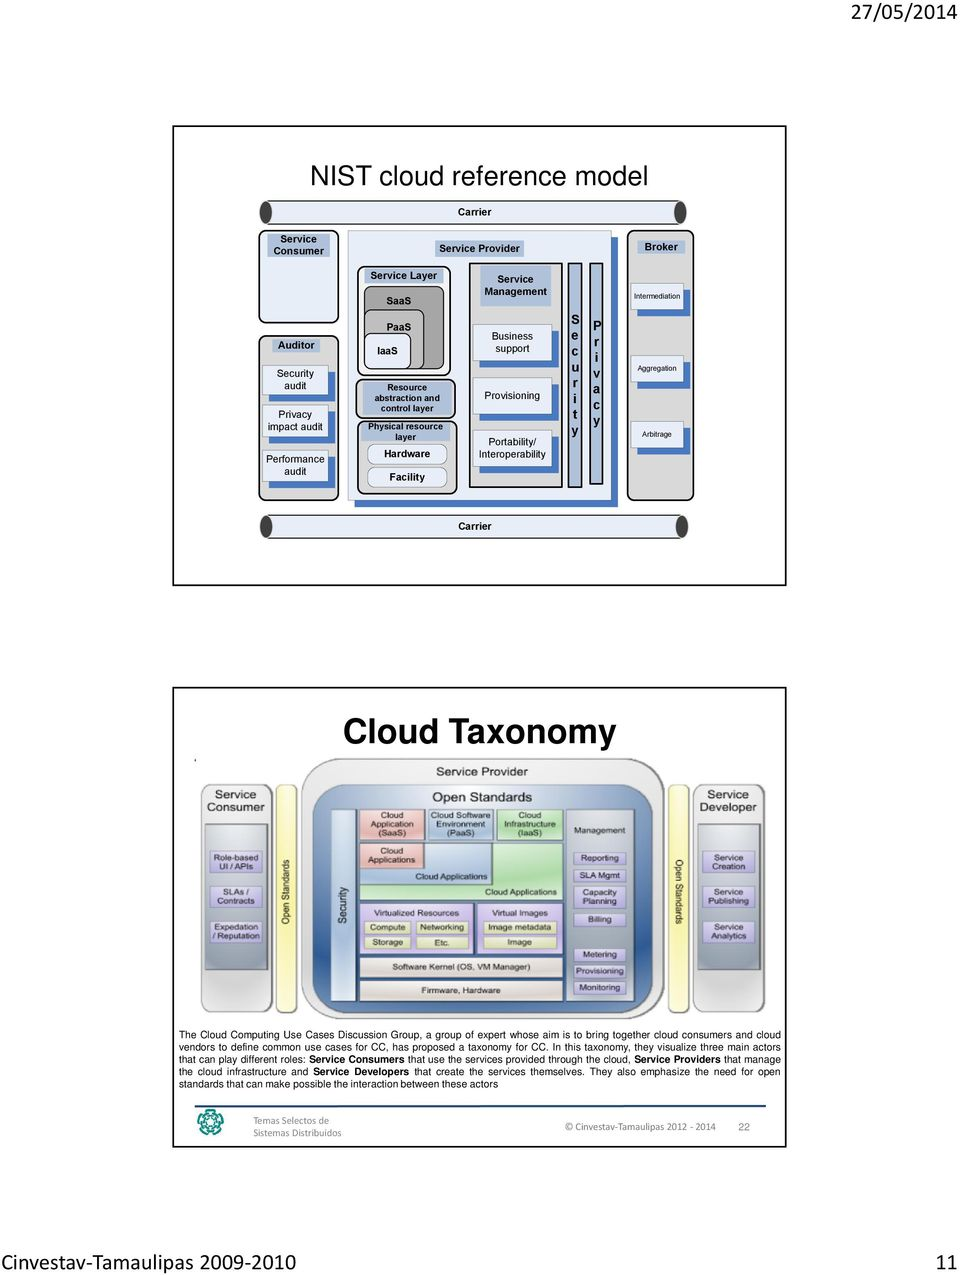 Arbitrage Carrier Cloud Taxonomy The Cloud Computing Use Cases Discussion Group, a group of expert whose aim is to bring together cloud consumers and cloud vendors to define common use cases for CC,